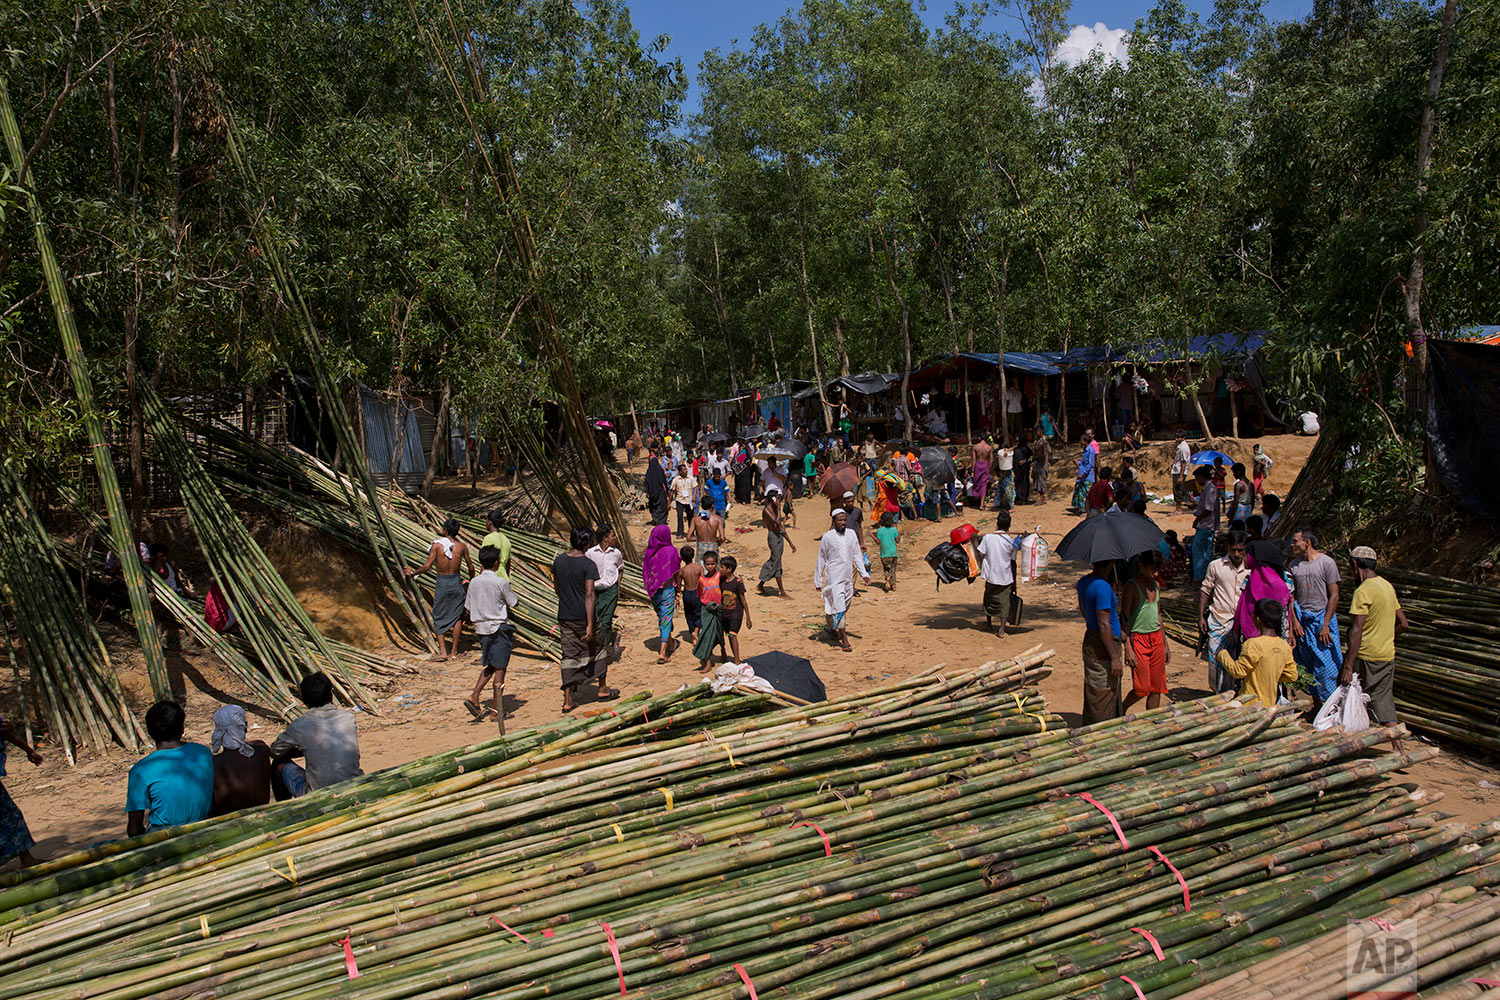 In this Saturday, Sept. 23, 2017 photo, newly arrived Rohingya Muslims walk past bundles of bamboo poles used to make tents at Lambashia, near Kutupalong, Bangladesh. (AP Photo/Bernat Armangue)